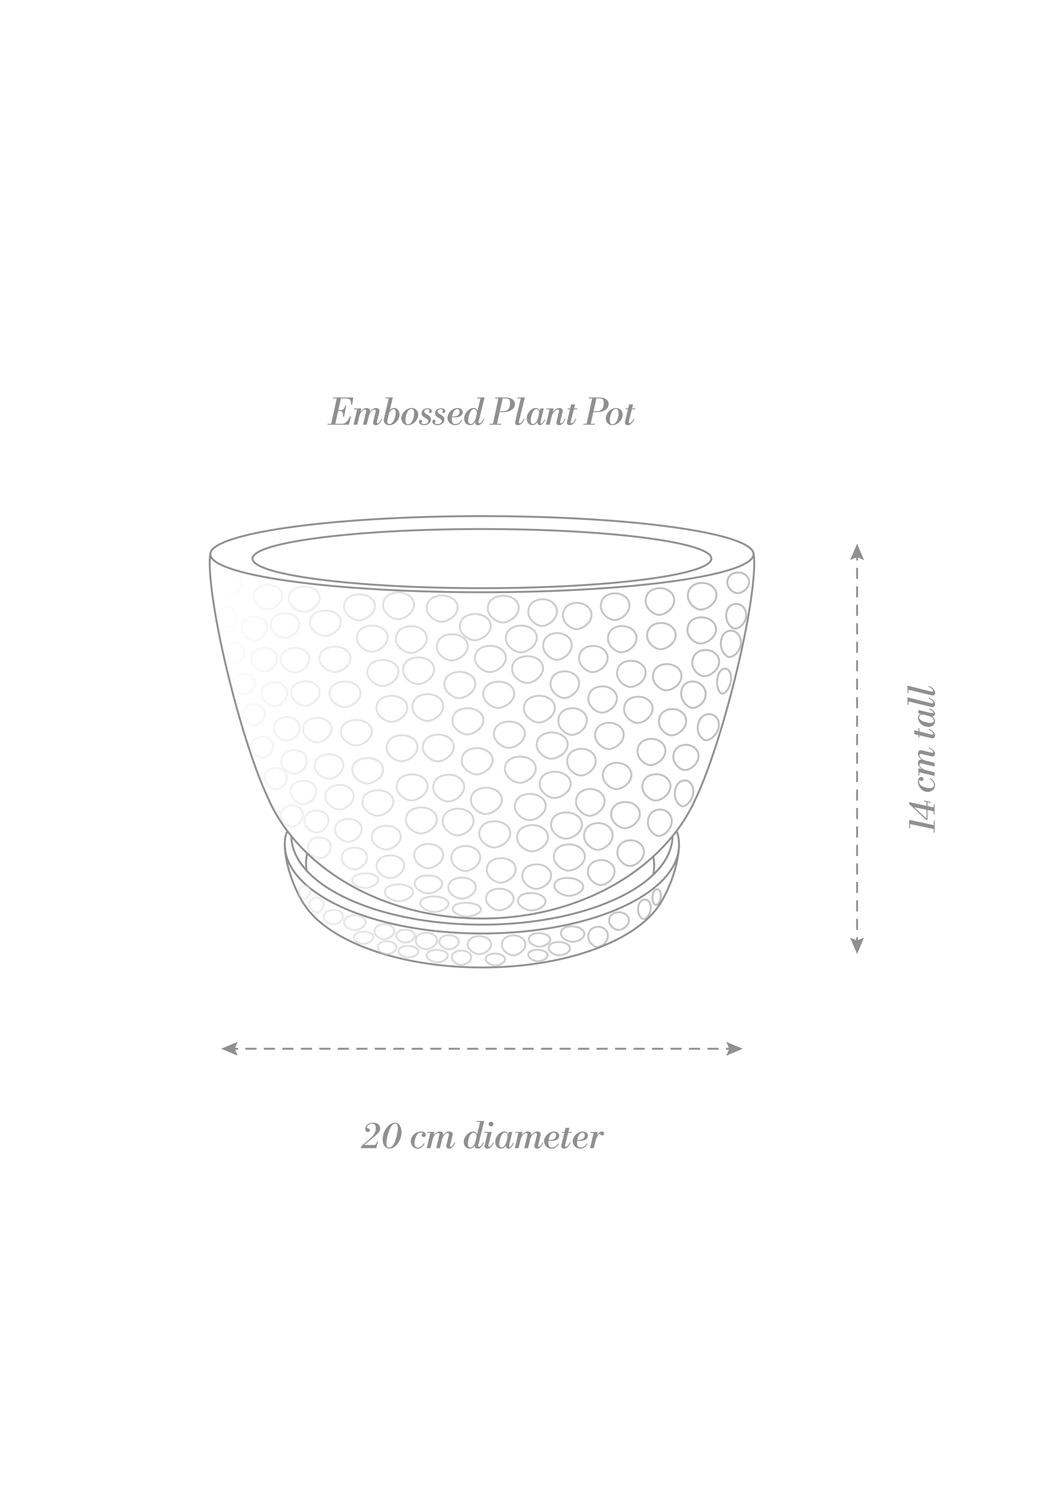 Embossed Plant Pot Product Diagram